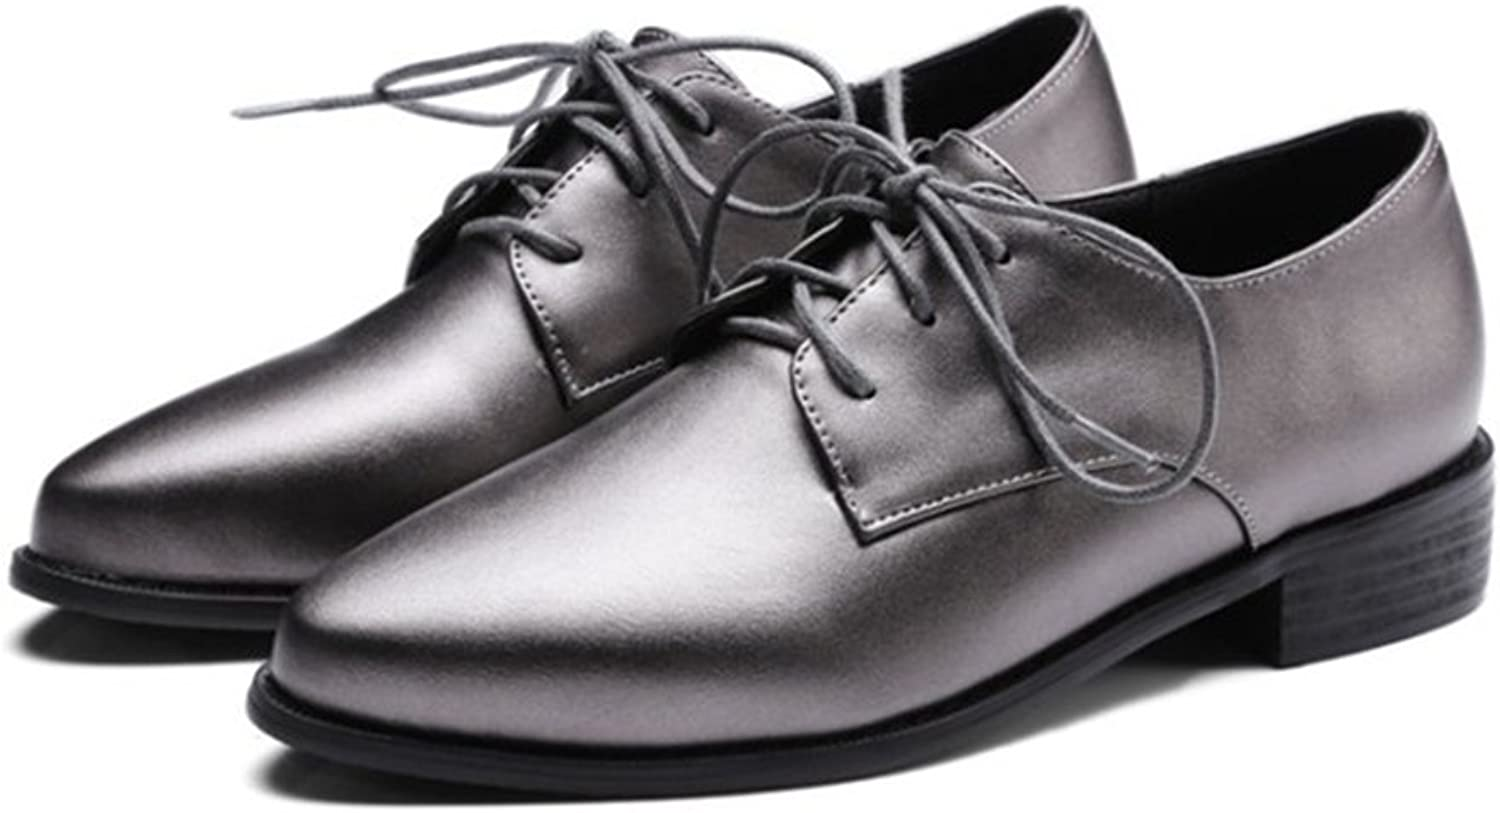 T-JULY Women's Fashion Oxfords shoes - Comfy Lace-up Slip On Low Heel Pointed Toe Wingtip shoes